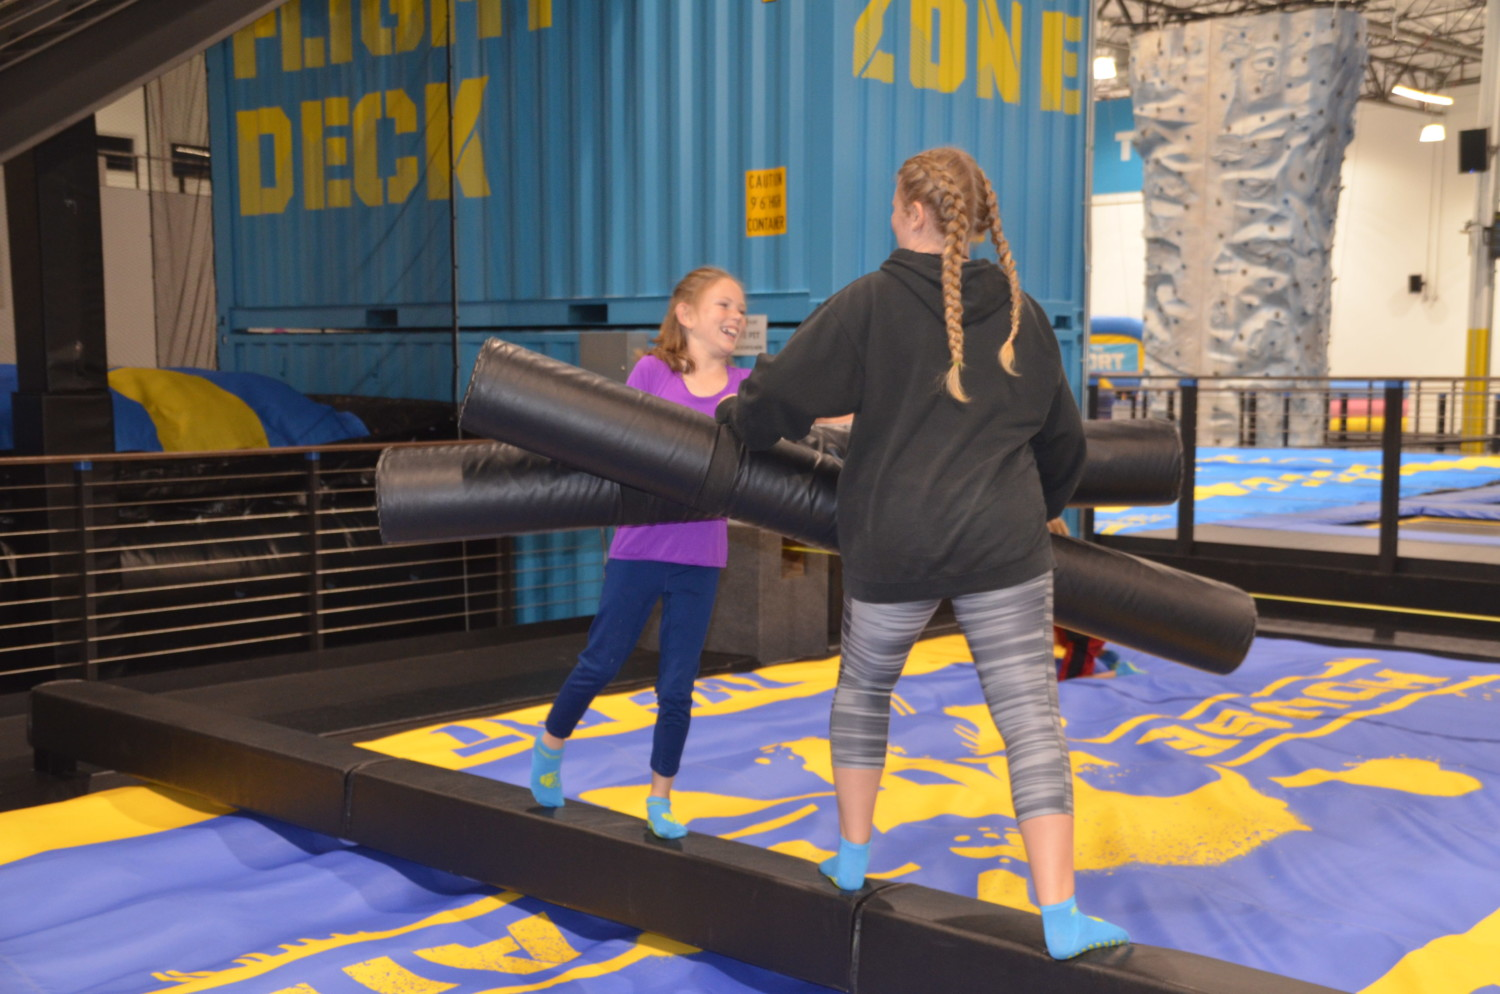 Visitors can participate in mock combat with padded pugil sticks that send players into air bags on both sides of the platform. Photo by E'Louise Ondash